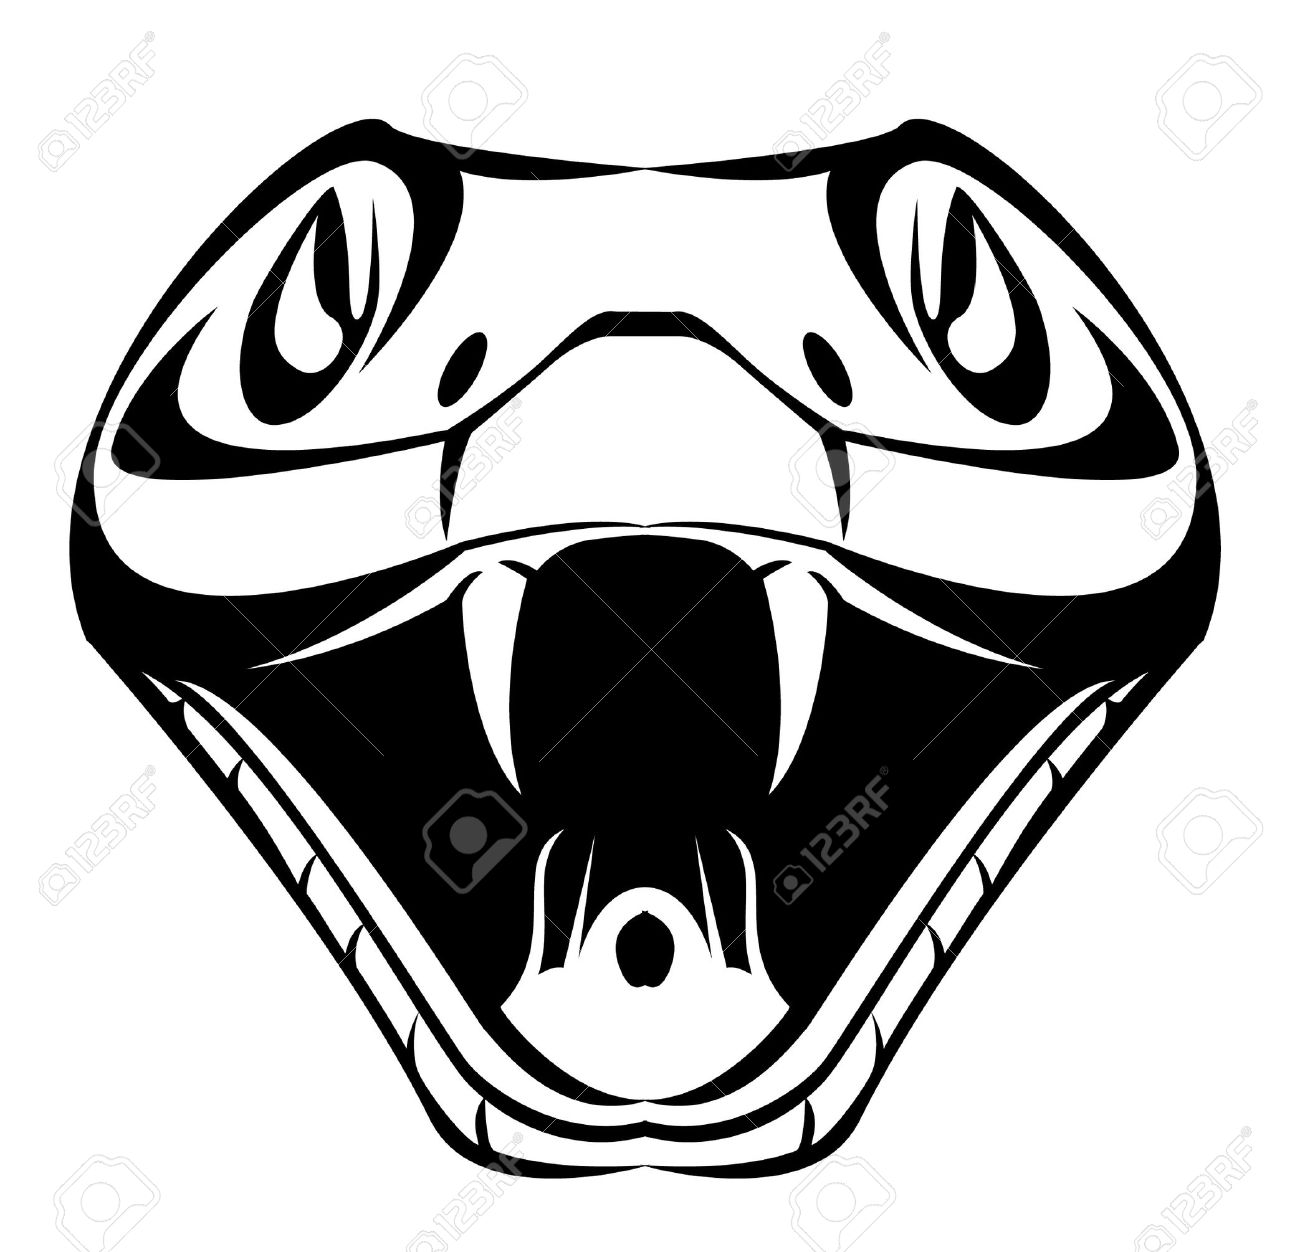 Snake Head Clipart Black And White.